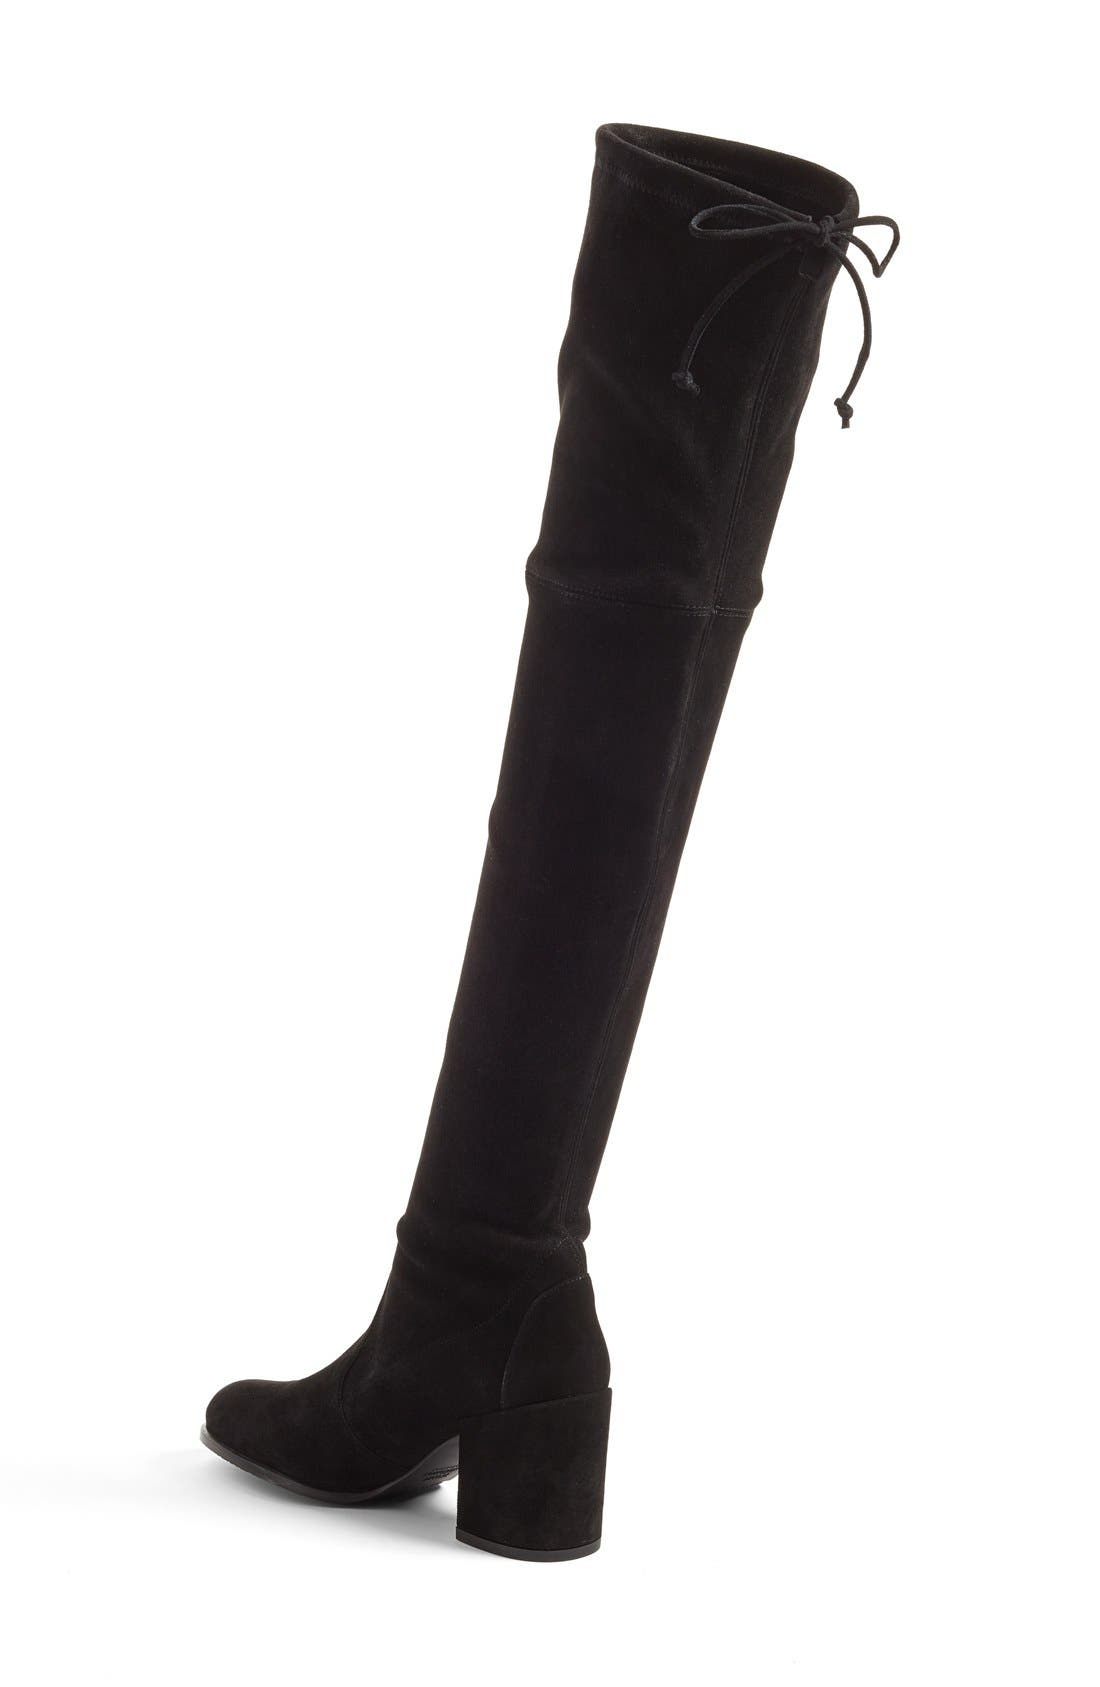 Tieland Over the Knee Boot,                             Alternate thumbnail 13, color,